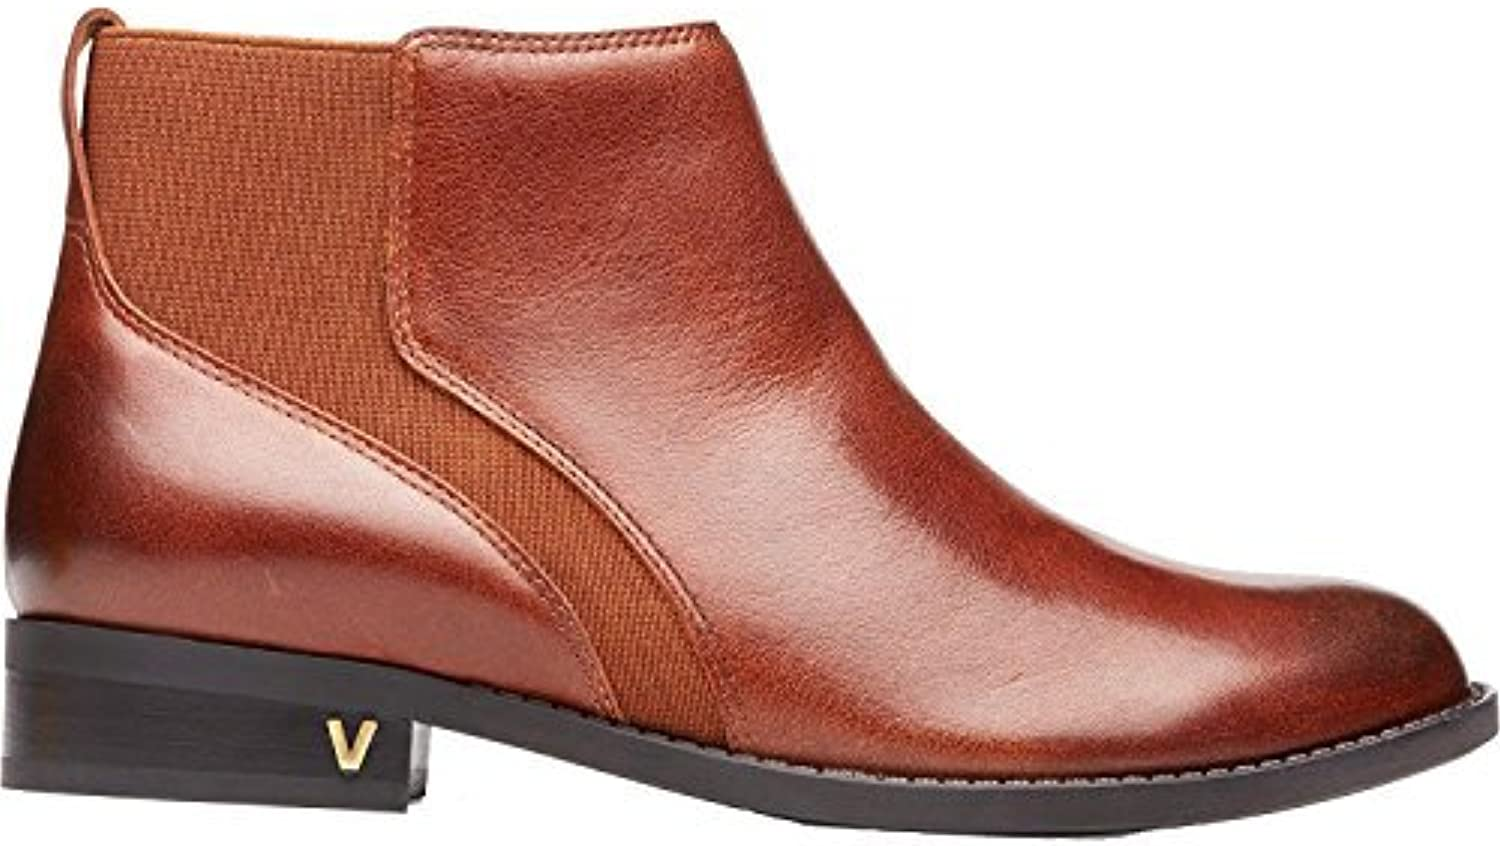 Vionic Women's Thatcher Ankle Boot in Chocolate